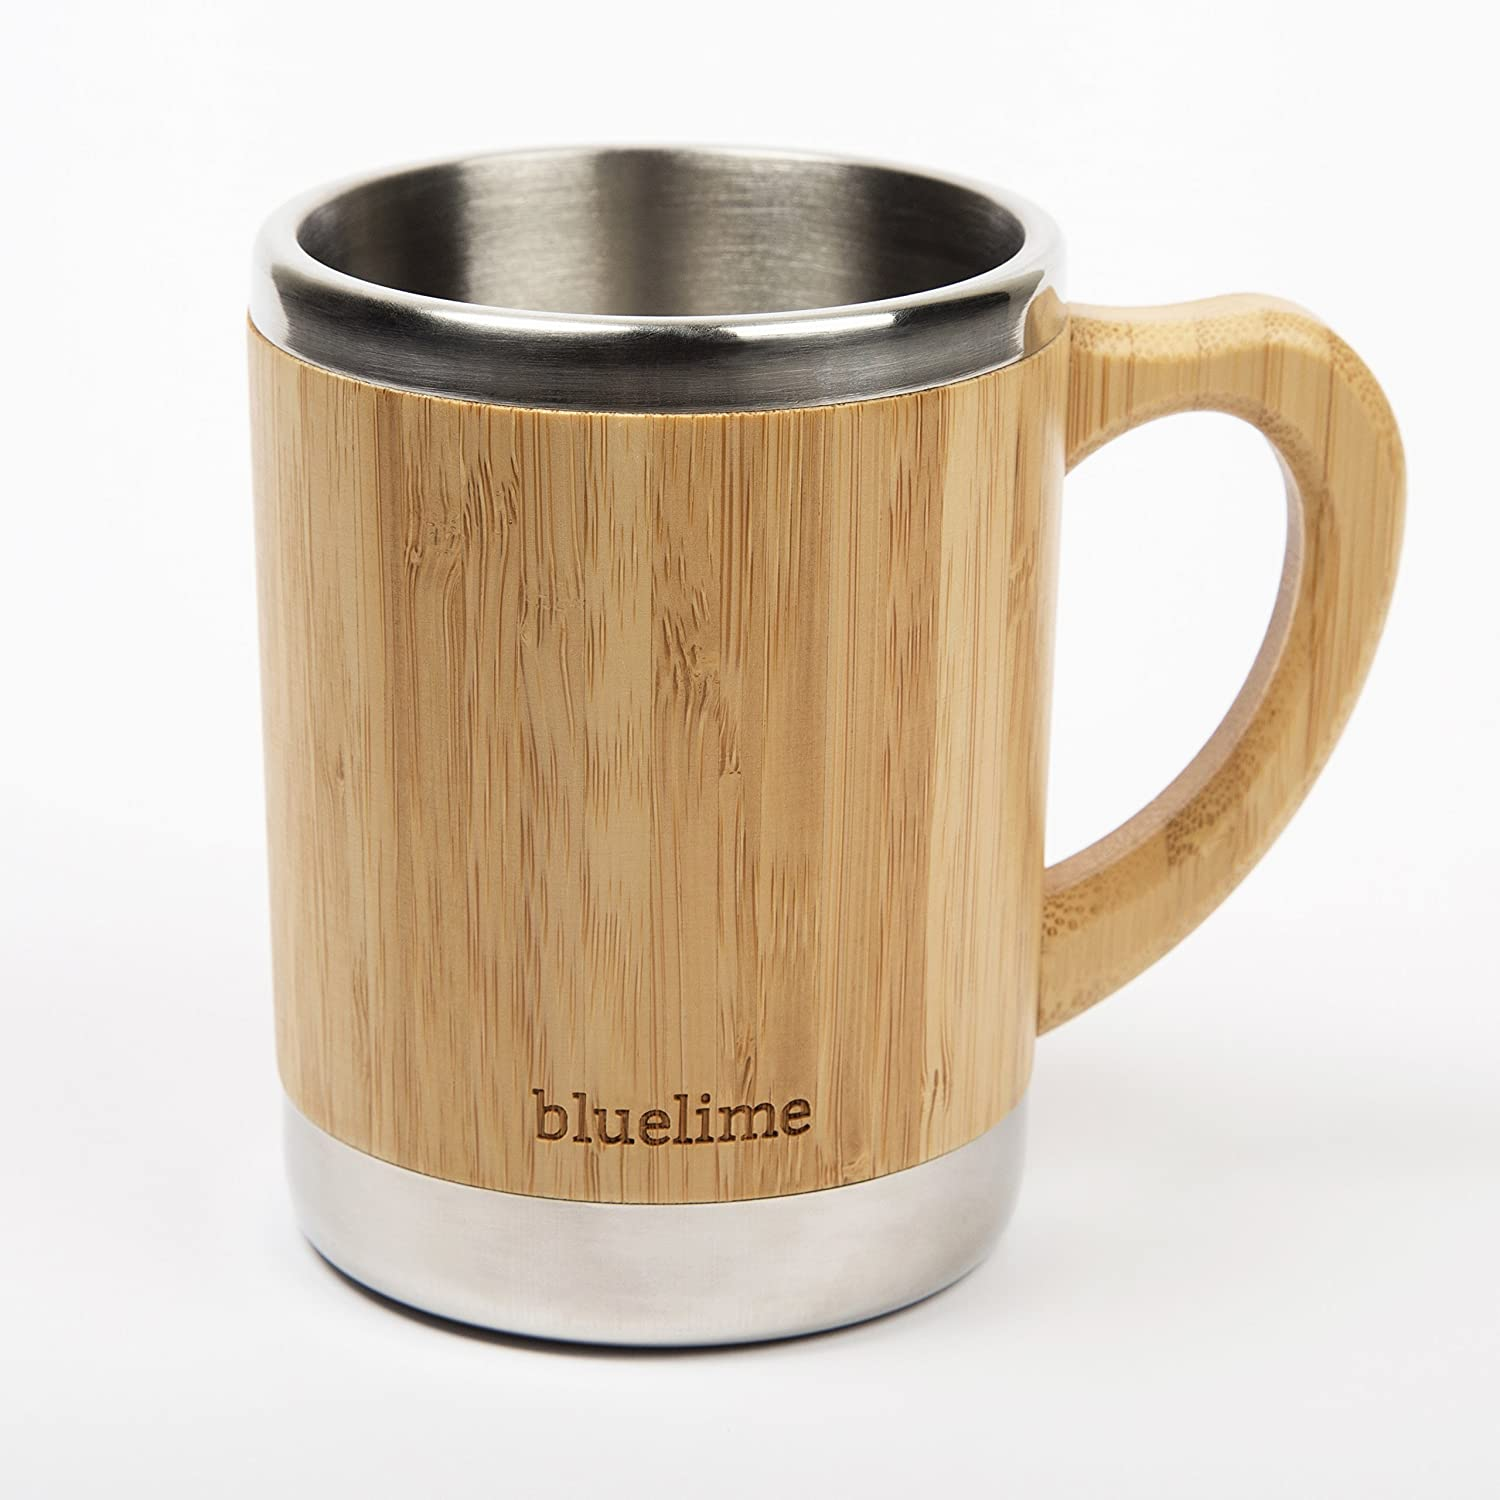 Amazon.com   Bluelime Bamboo Coffee Mug - Stainless Steel Wooden Coffee Tea Mug: Insulated - Light & Portable for Office - Lid and Handle - Keeps Drinks Hot or Cold - 10 oz - 100% Eco-Friendly